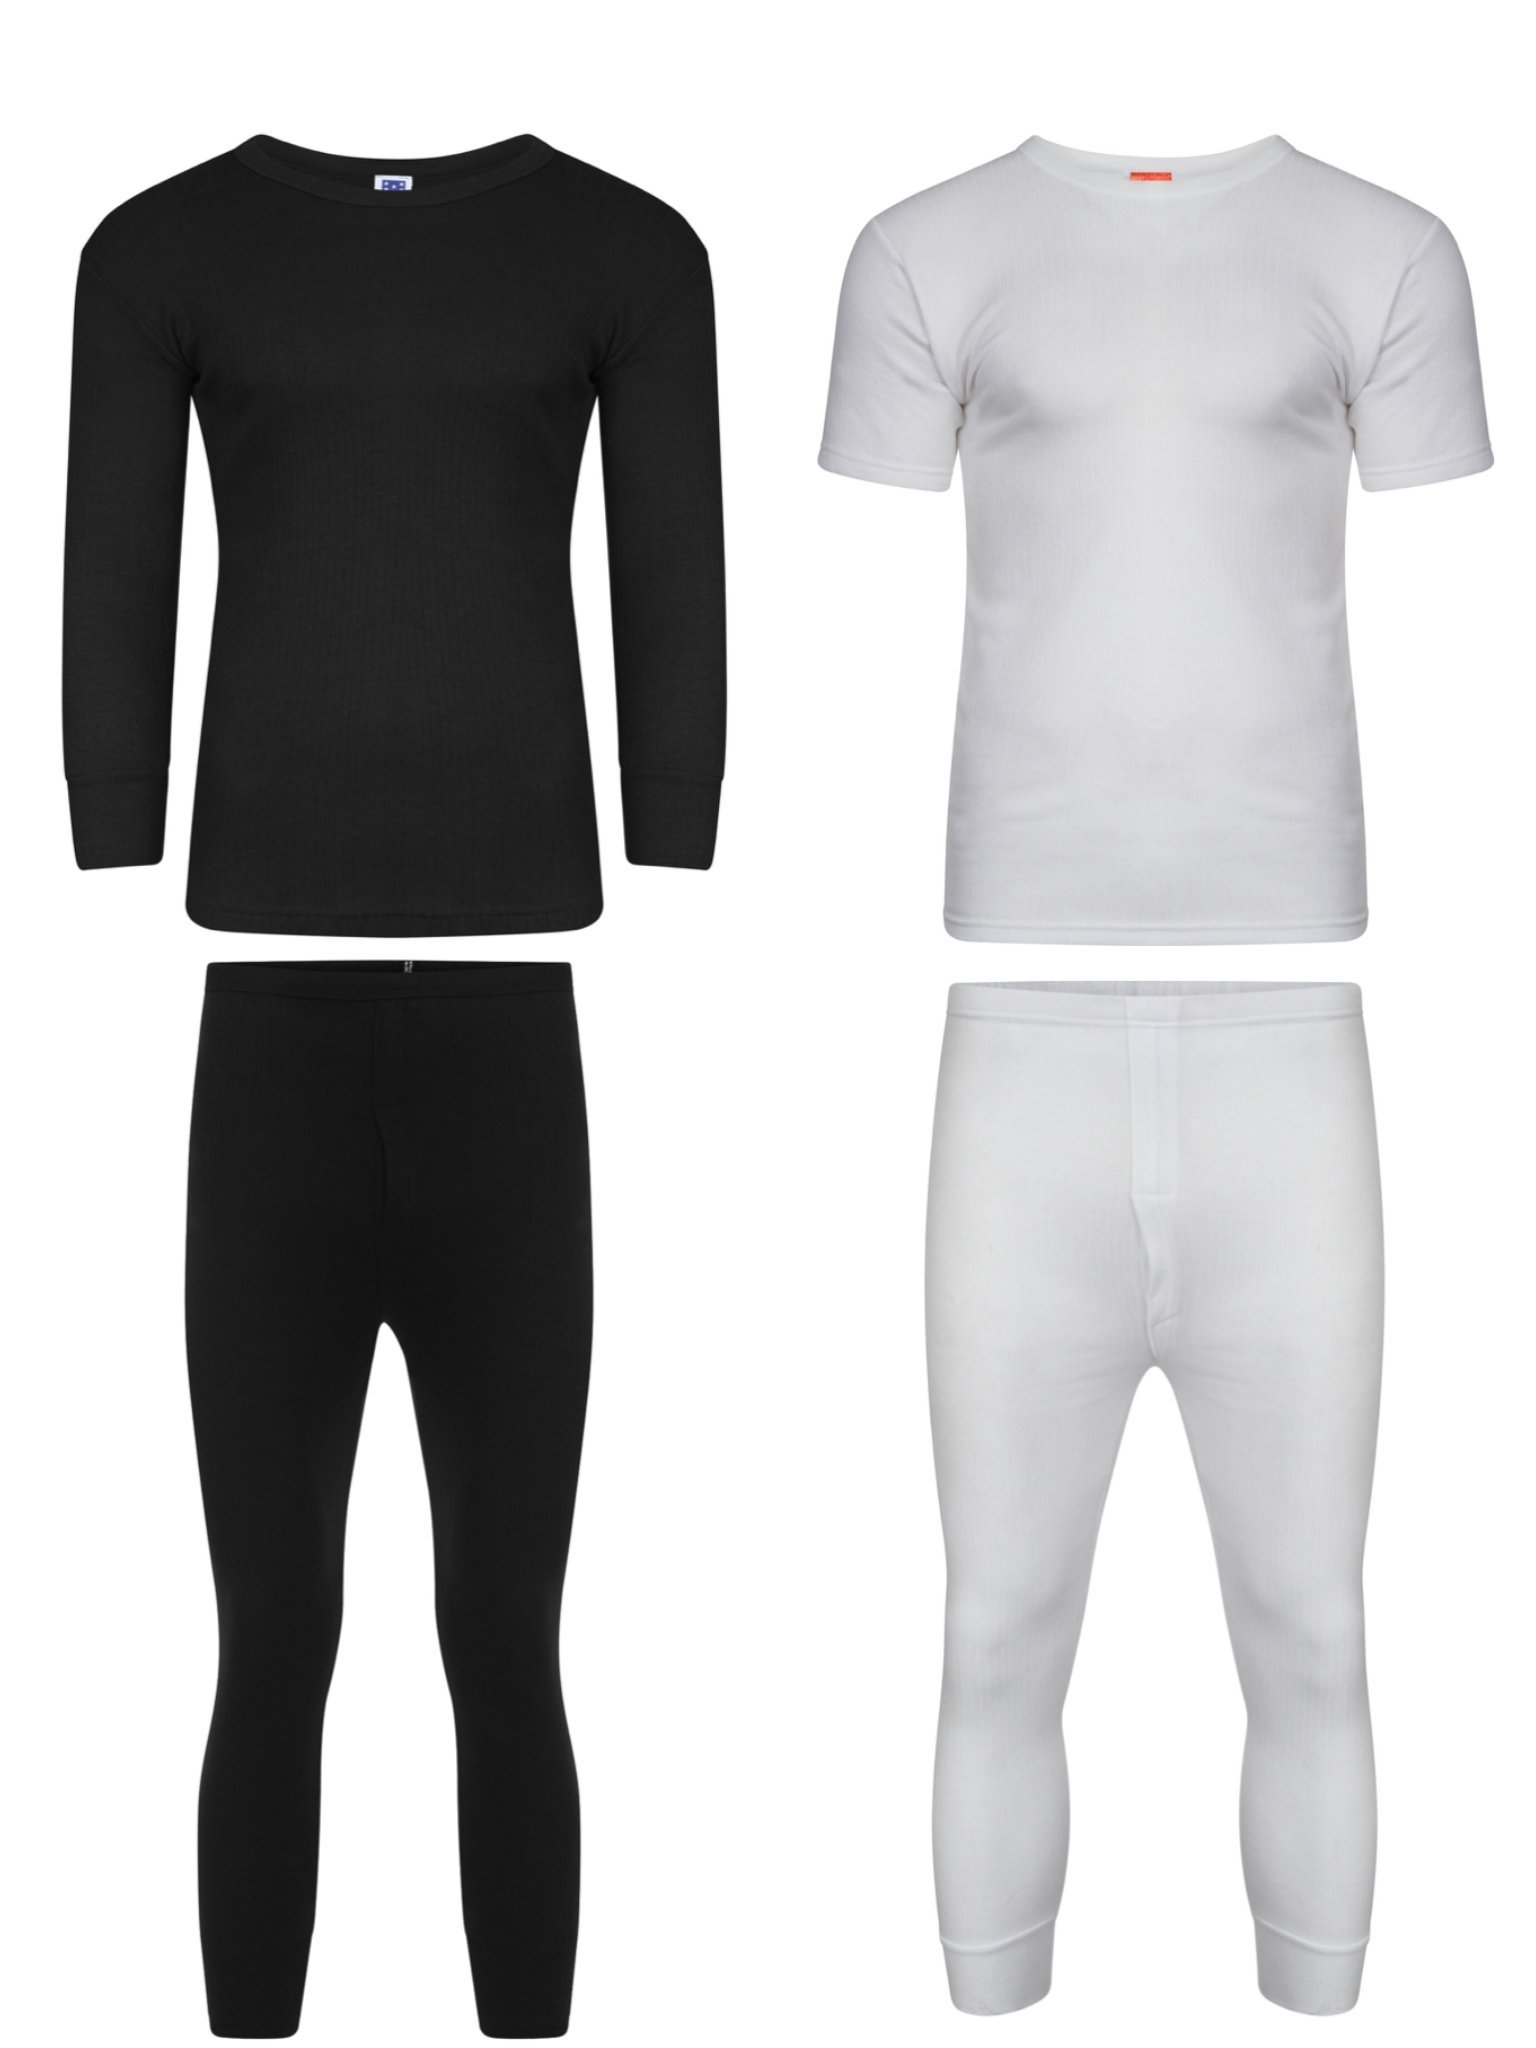 Geeney Thermal Underwear Thermal Underwear Set Long Sleeve Vest Top and Long Johns Extreme Hot Thermals Full Set Warm Base Layer T-Shirt Bottoms Trousers Pants for Winter Camping Ski Mens Thermal